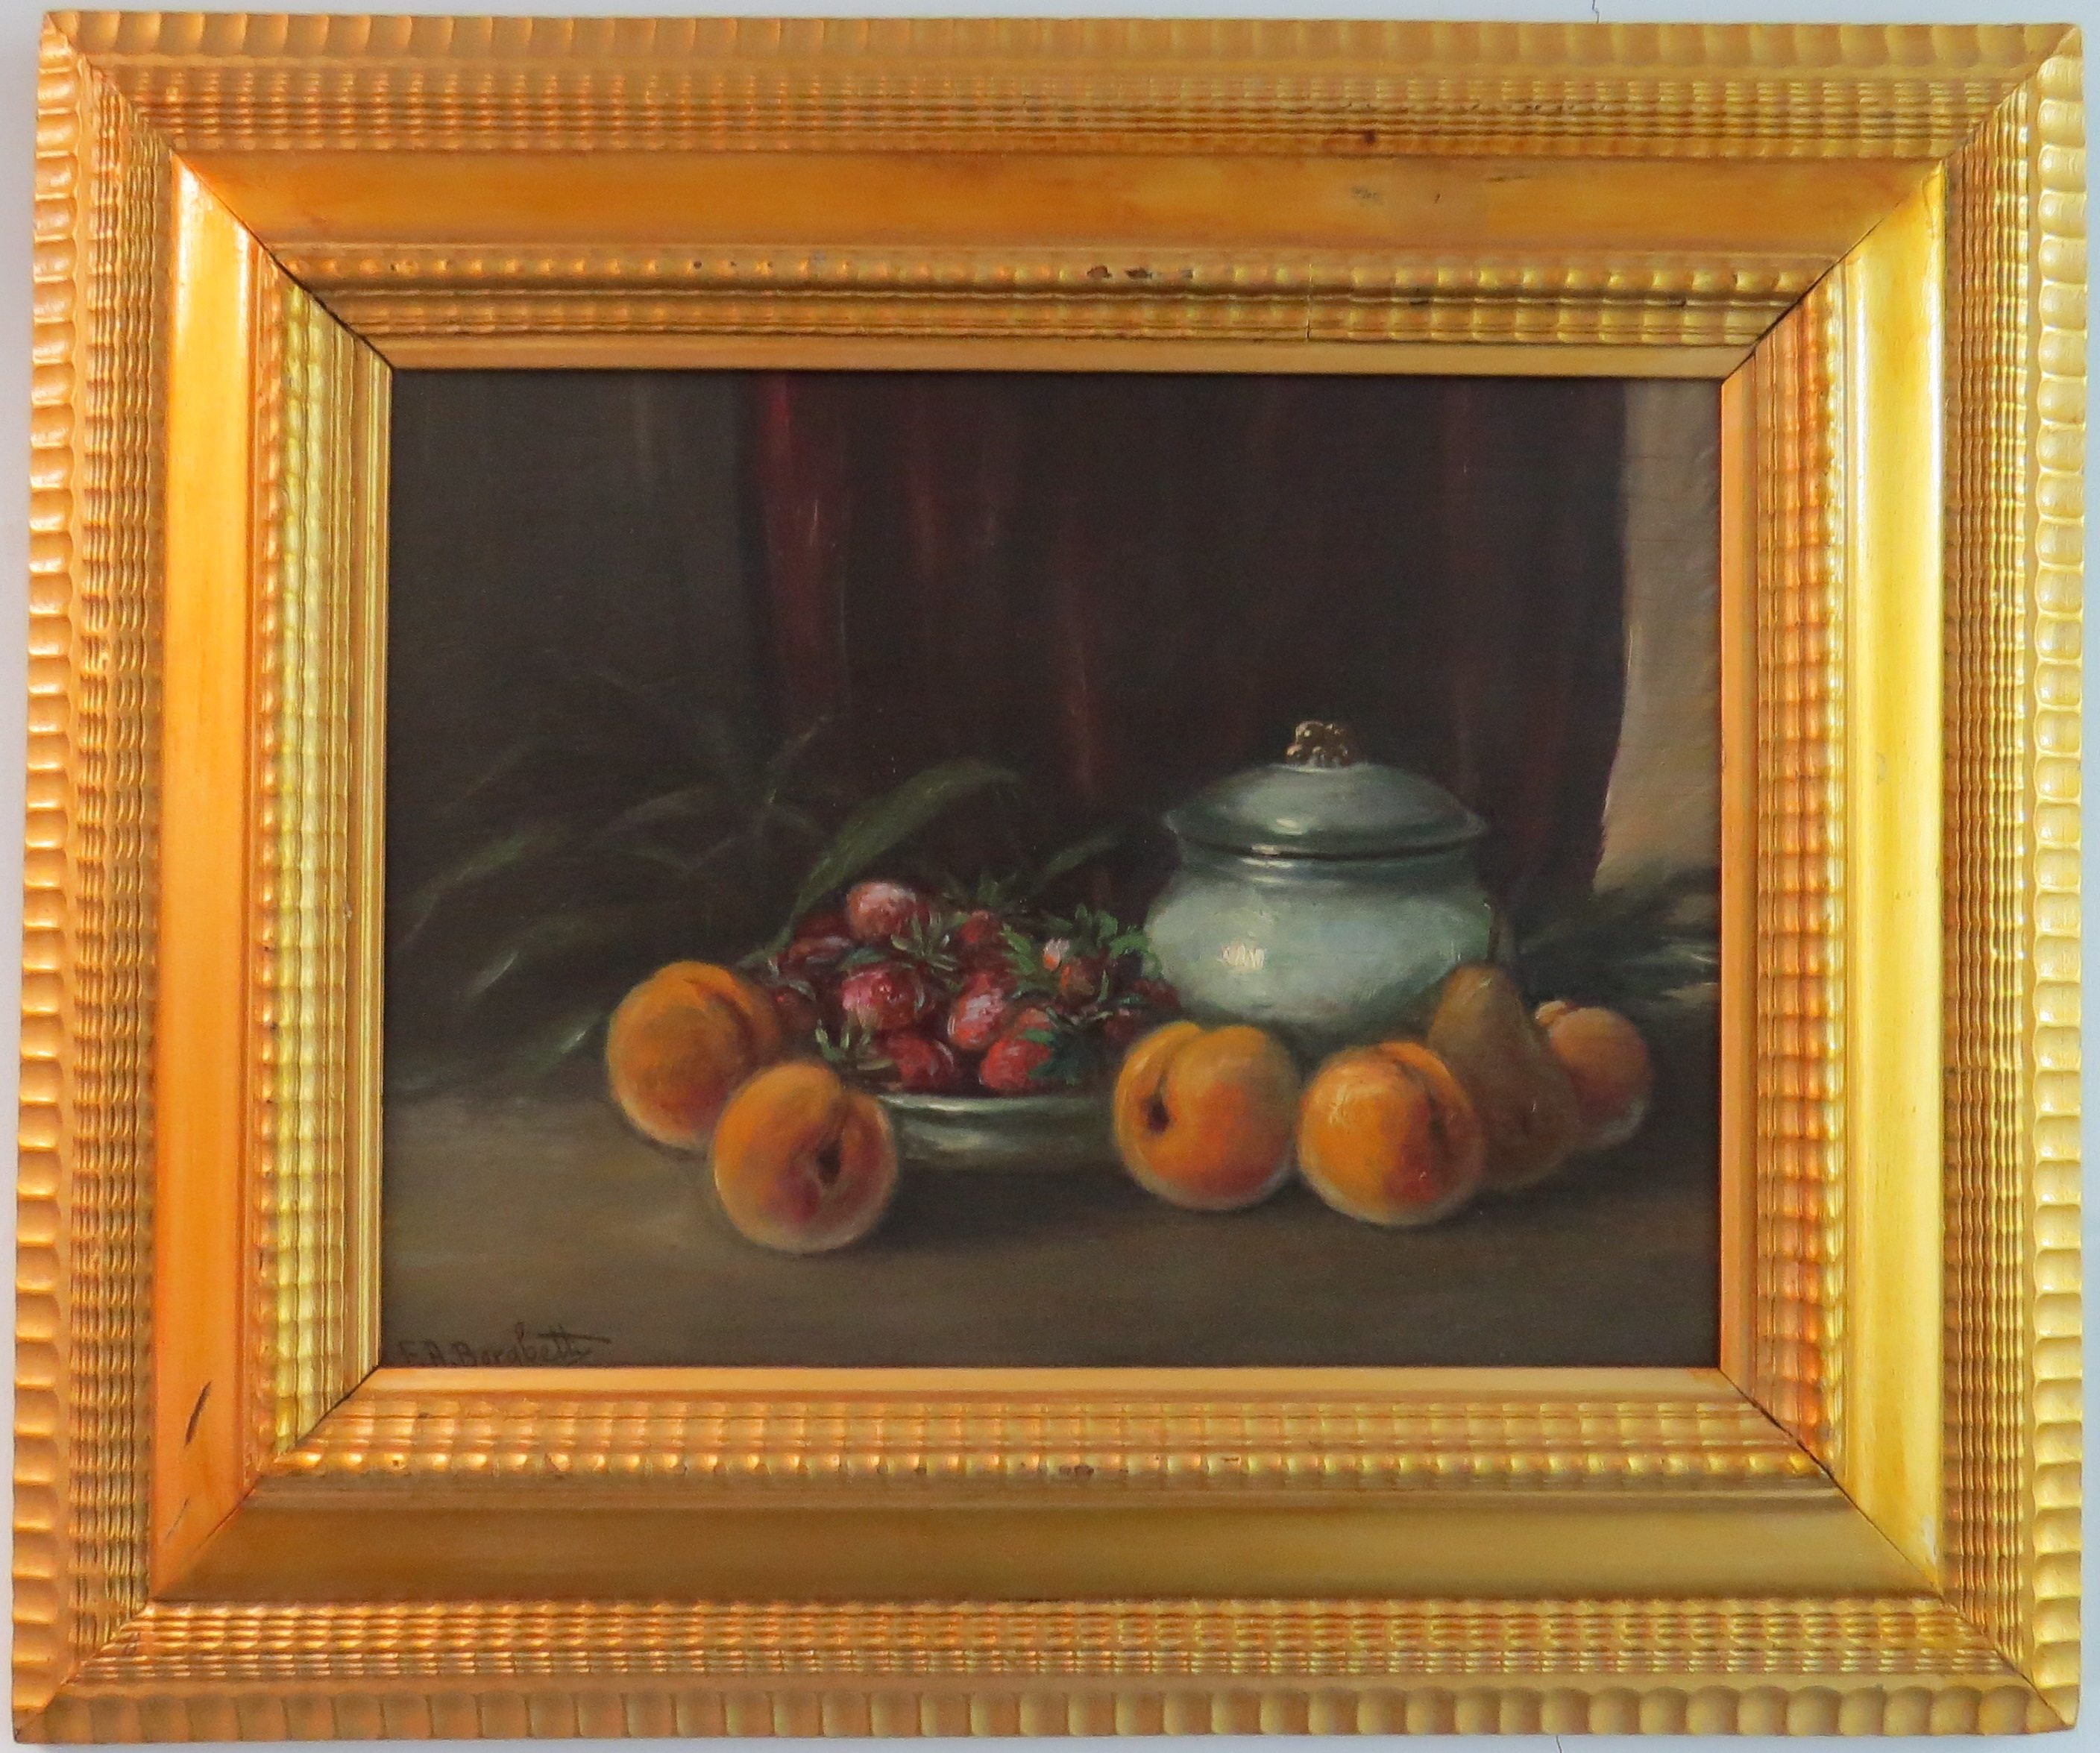 Oil on Panel of a Still Life, signed E.A. Borabetti (Italian, 1880)